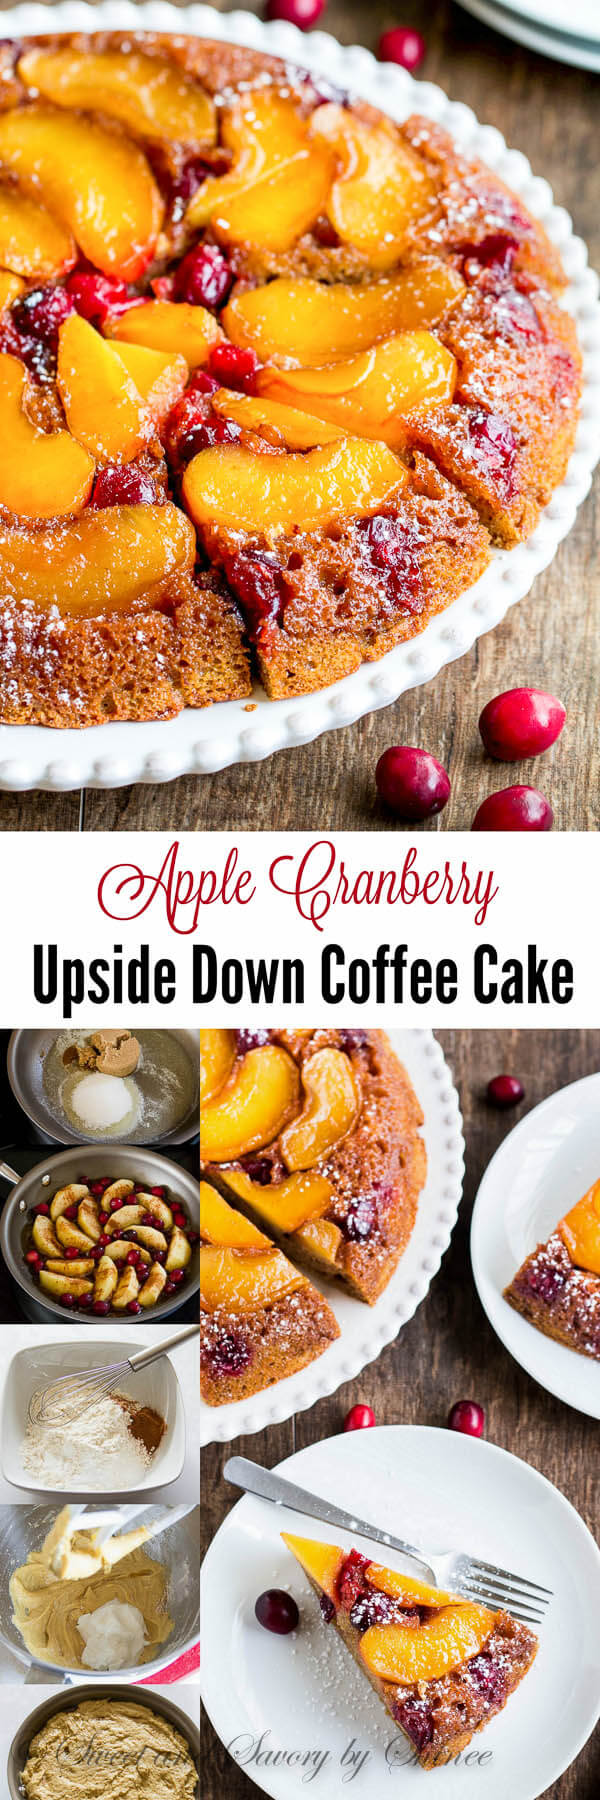 Juicy sweet apples and tart cranberries simmered in caramelized sauce soak into tender spiced coffee cake. This apple cranberry upside down coffee cake is a must this holiday season.